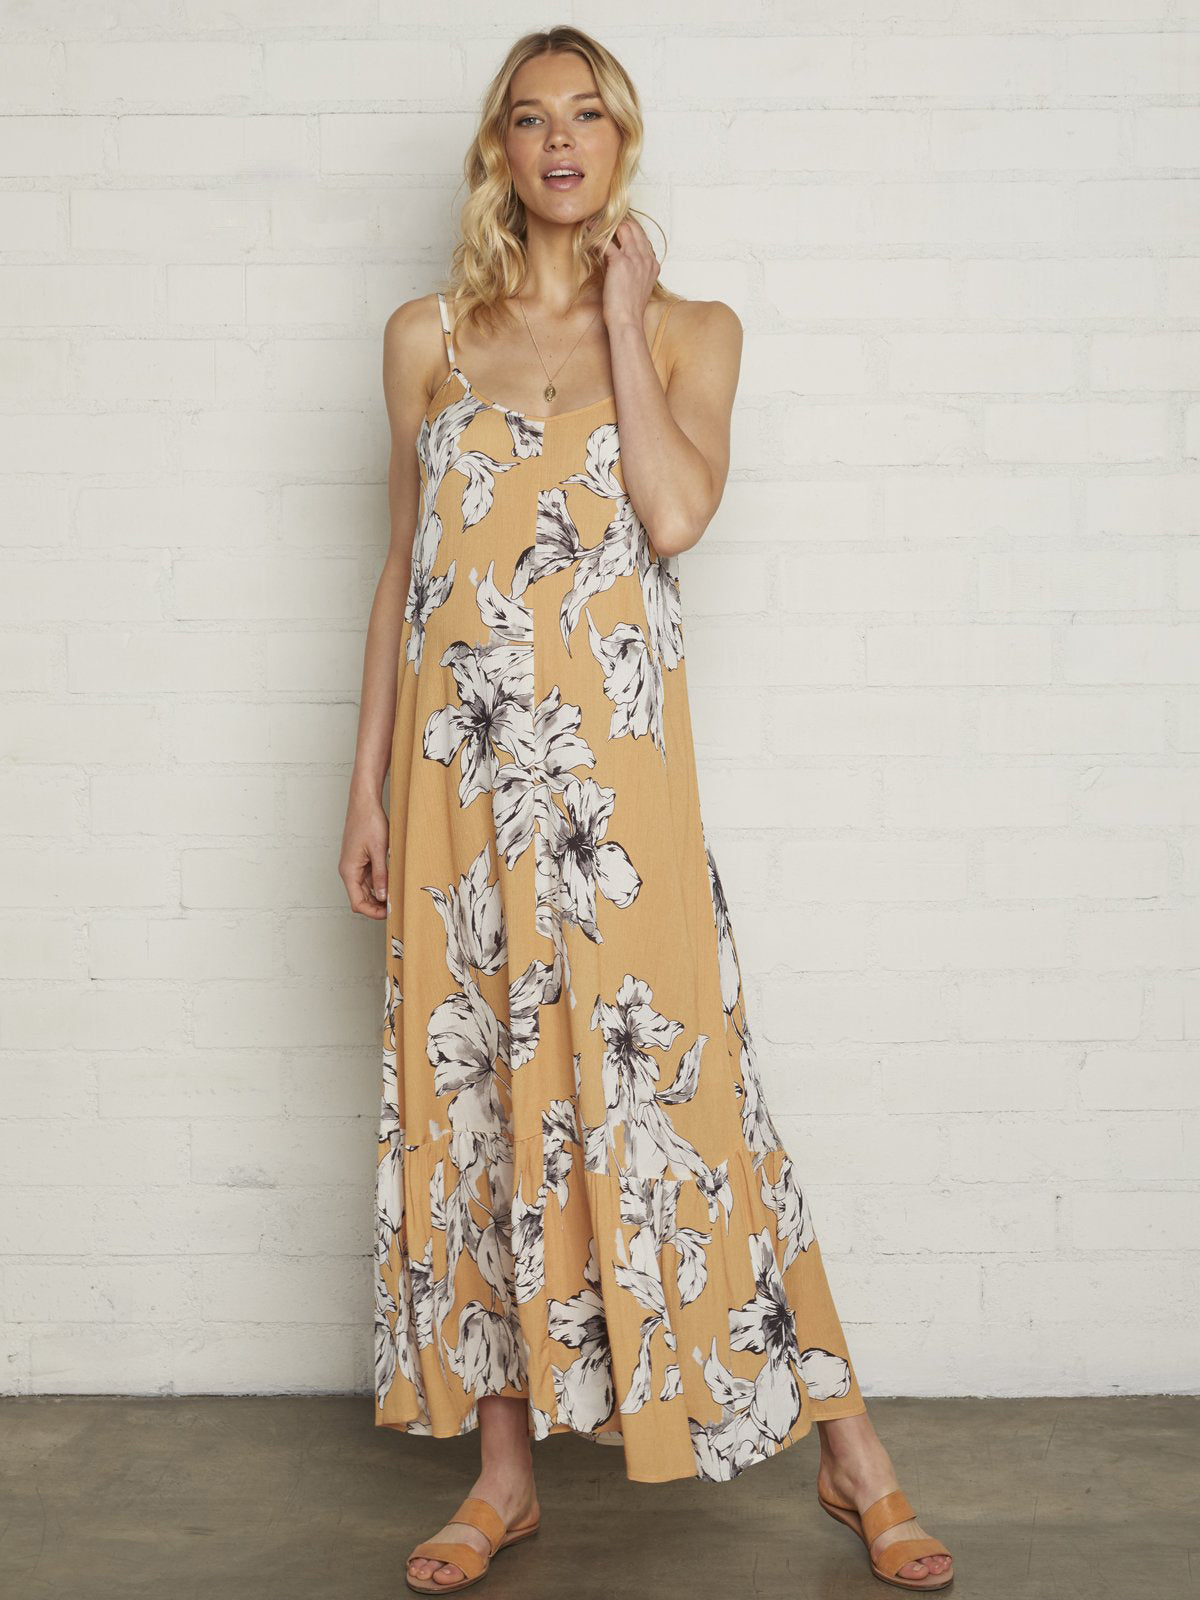 Rachel Pally Maternity Cilla Maxi Dress - Provence Yellow Floral Print | TILDEN